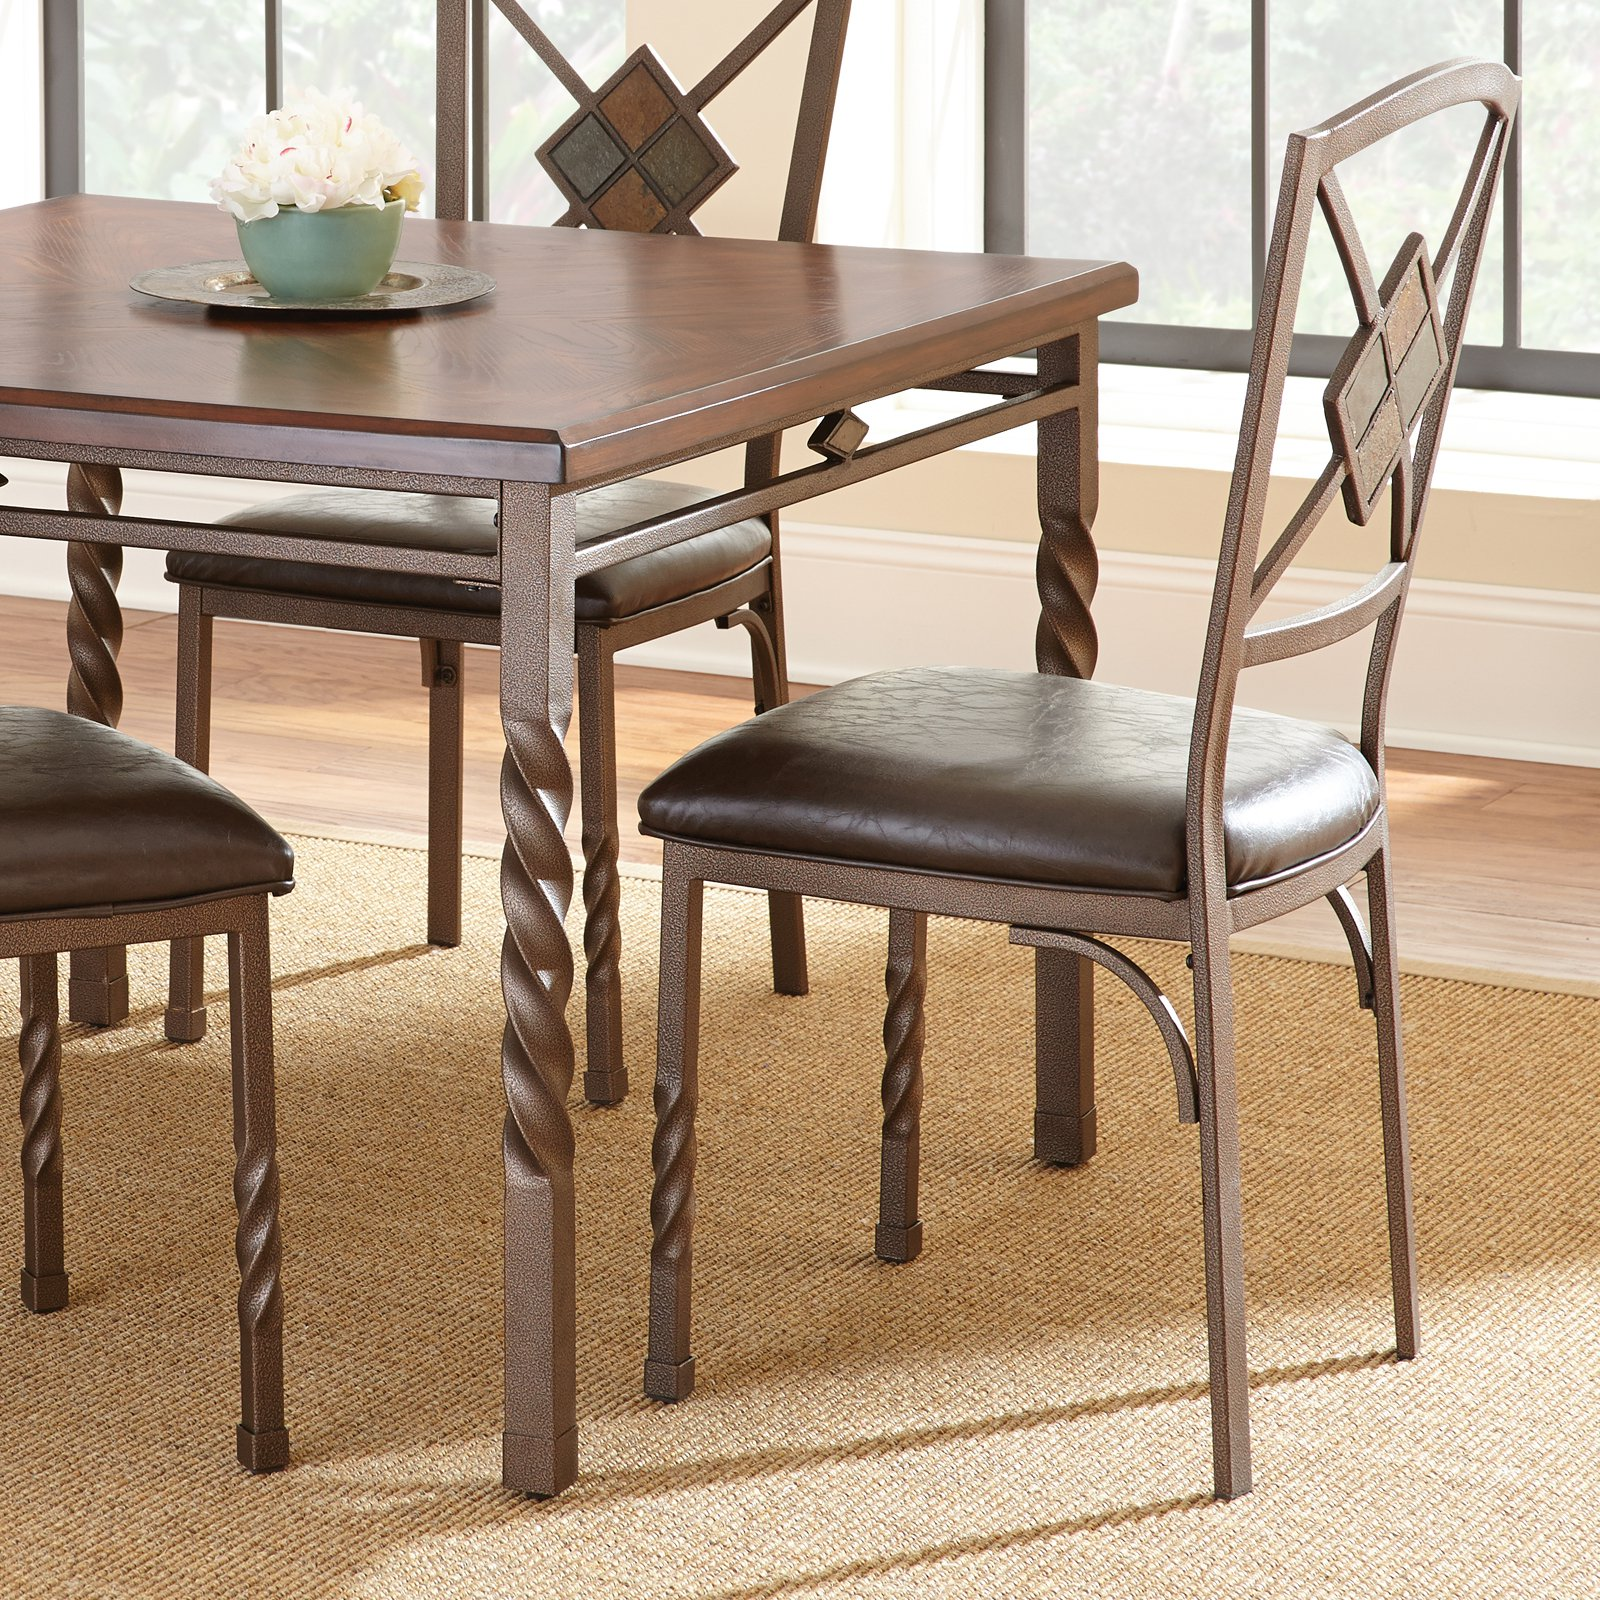 Steve Silver Annabella Side Dining Chair Set of 4 Dark Brown Upholstery by Steve Silver Co